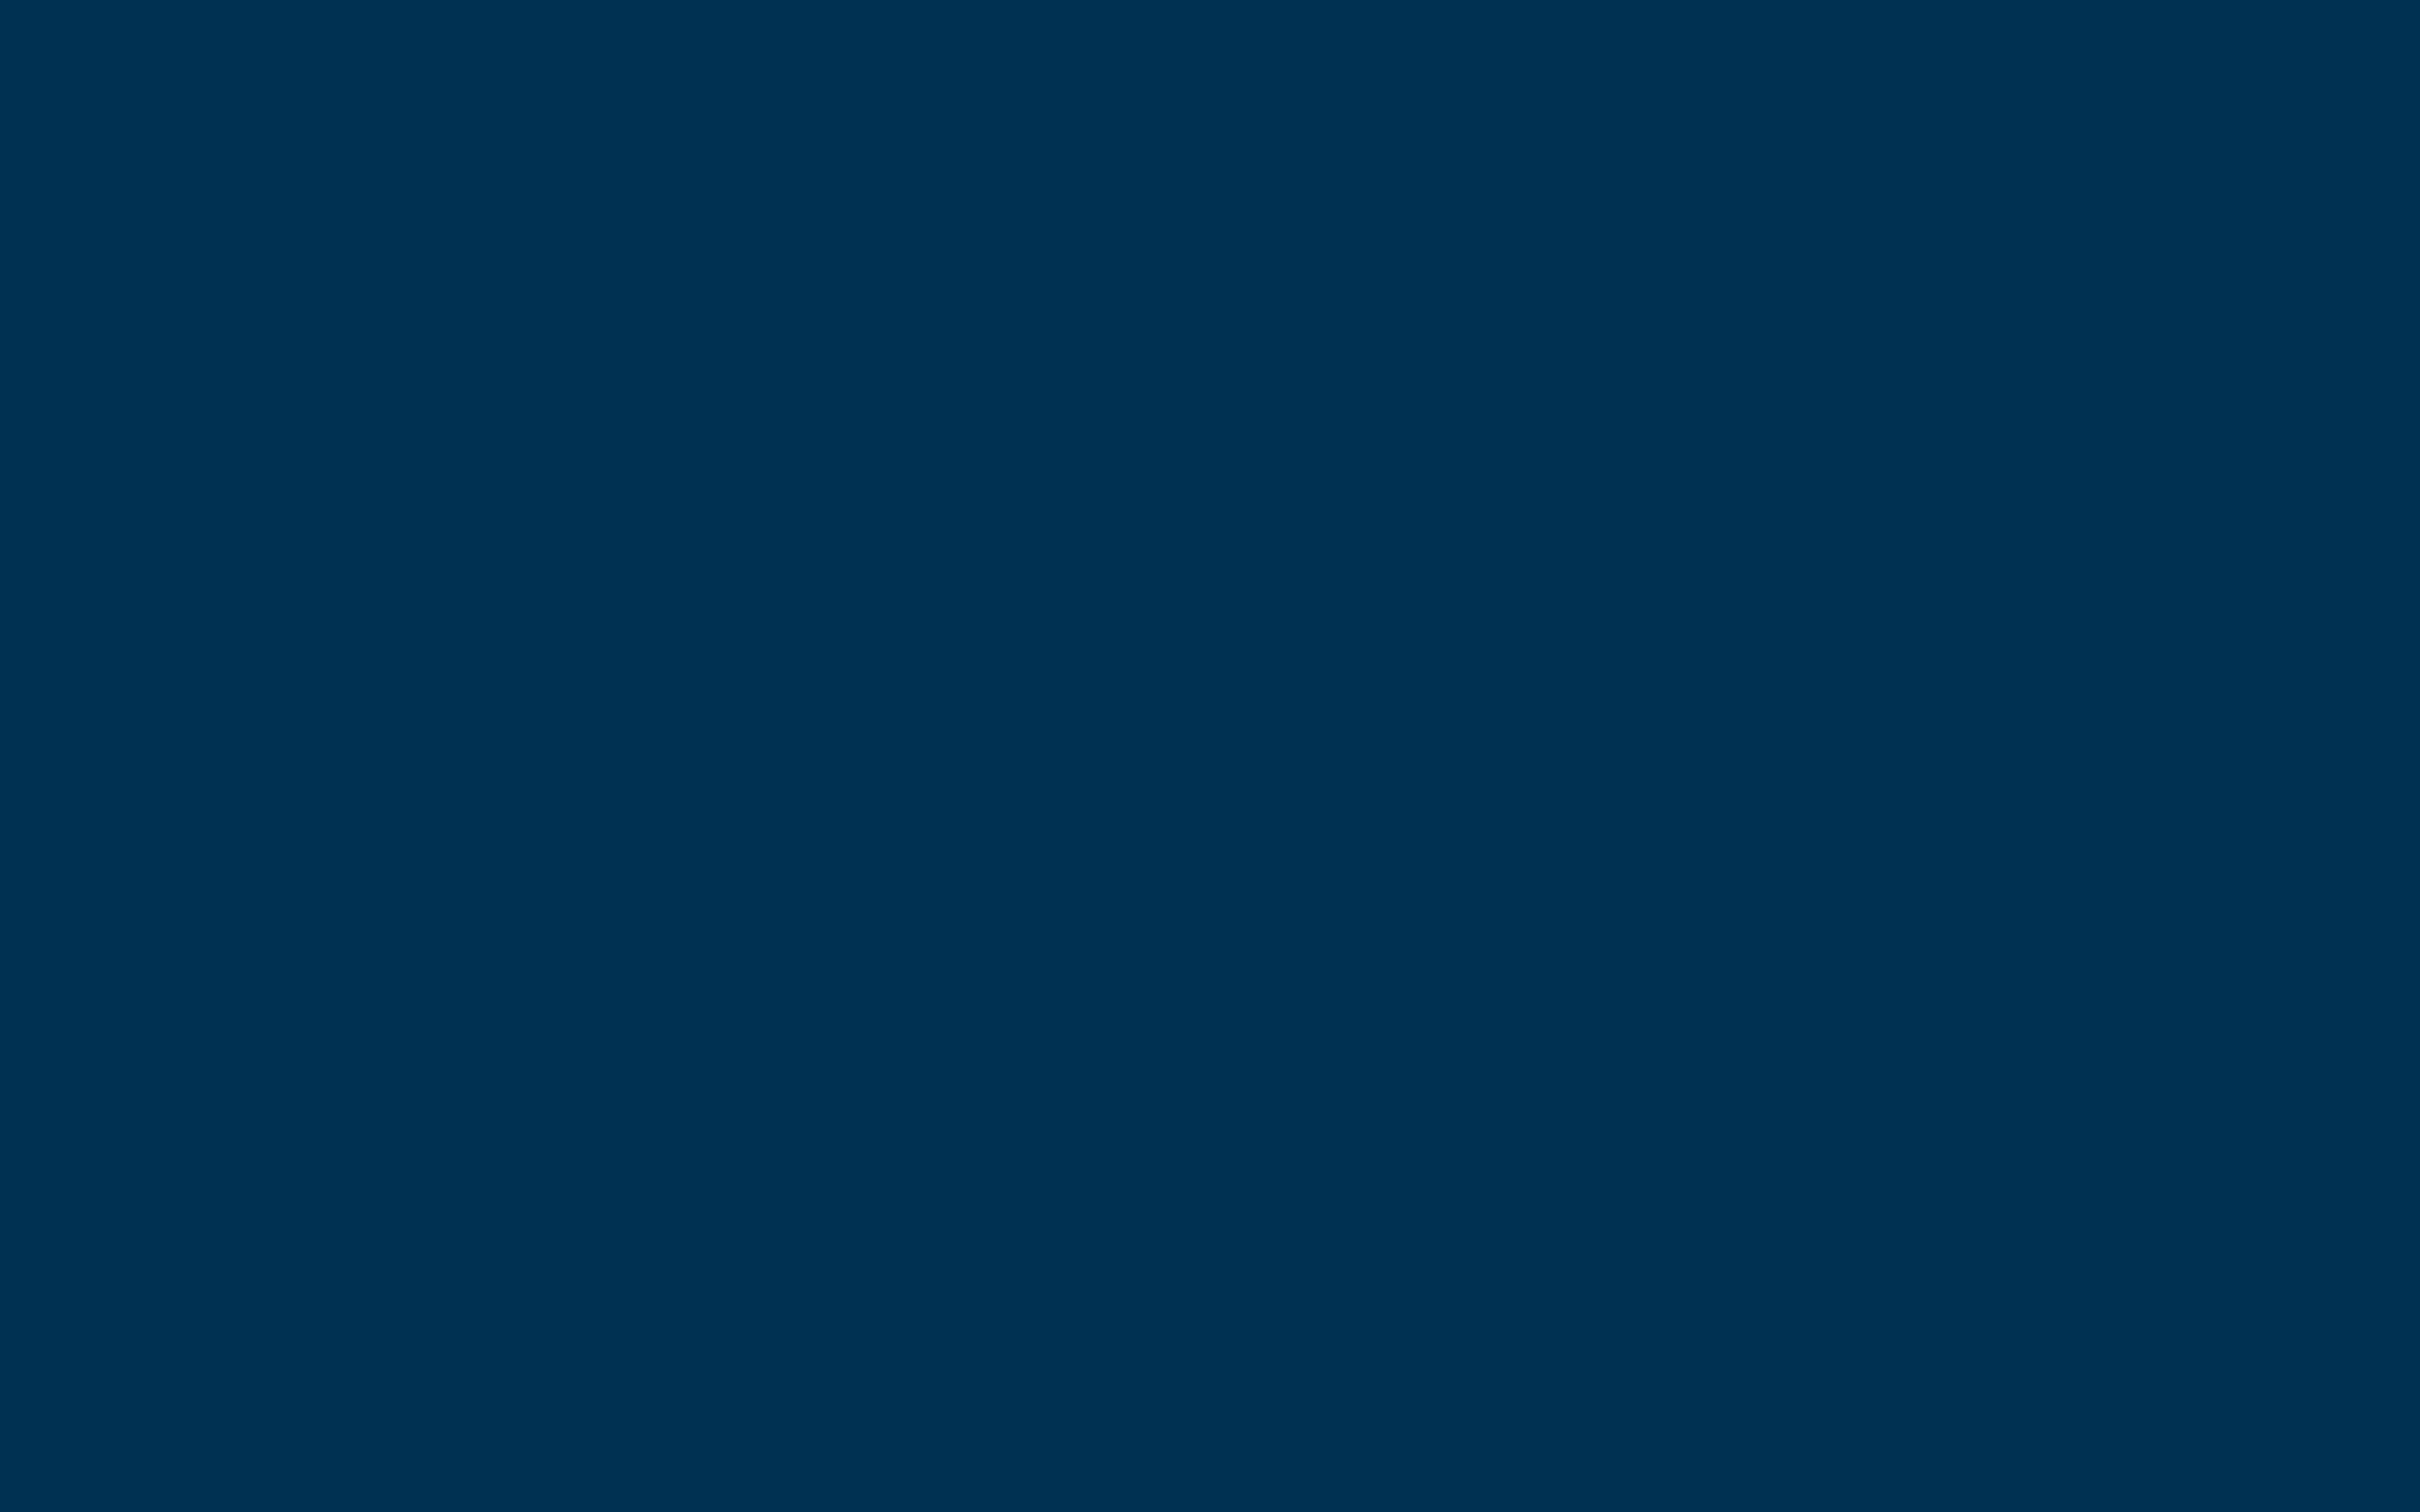 2560x1600 Prussian Blue Solid Color Background